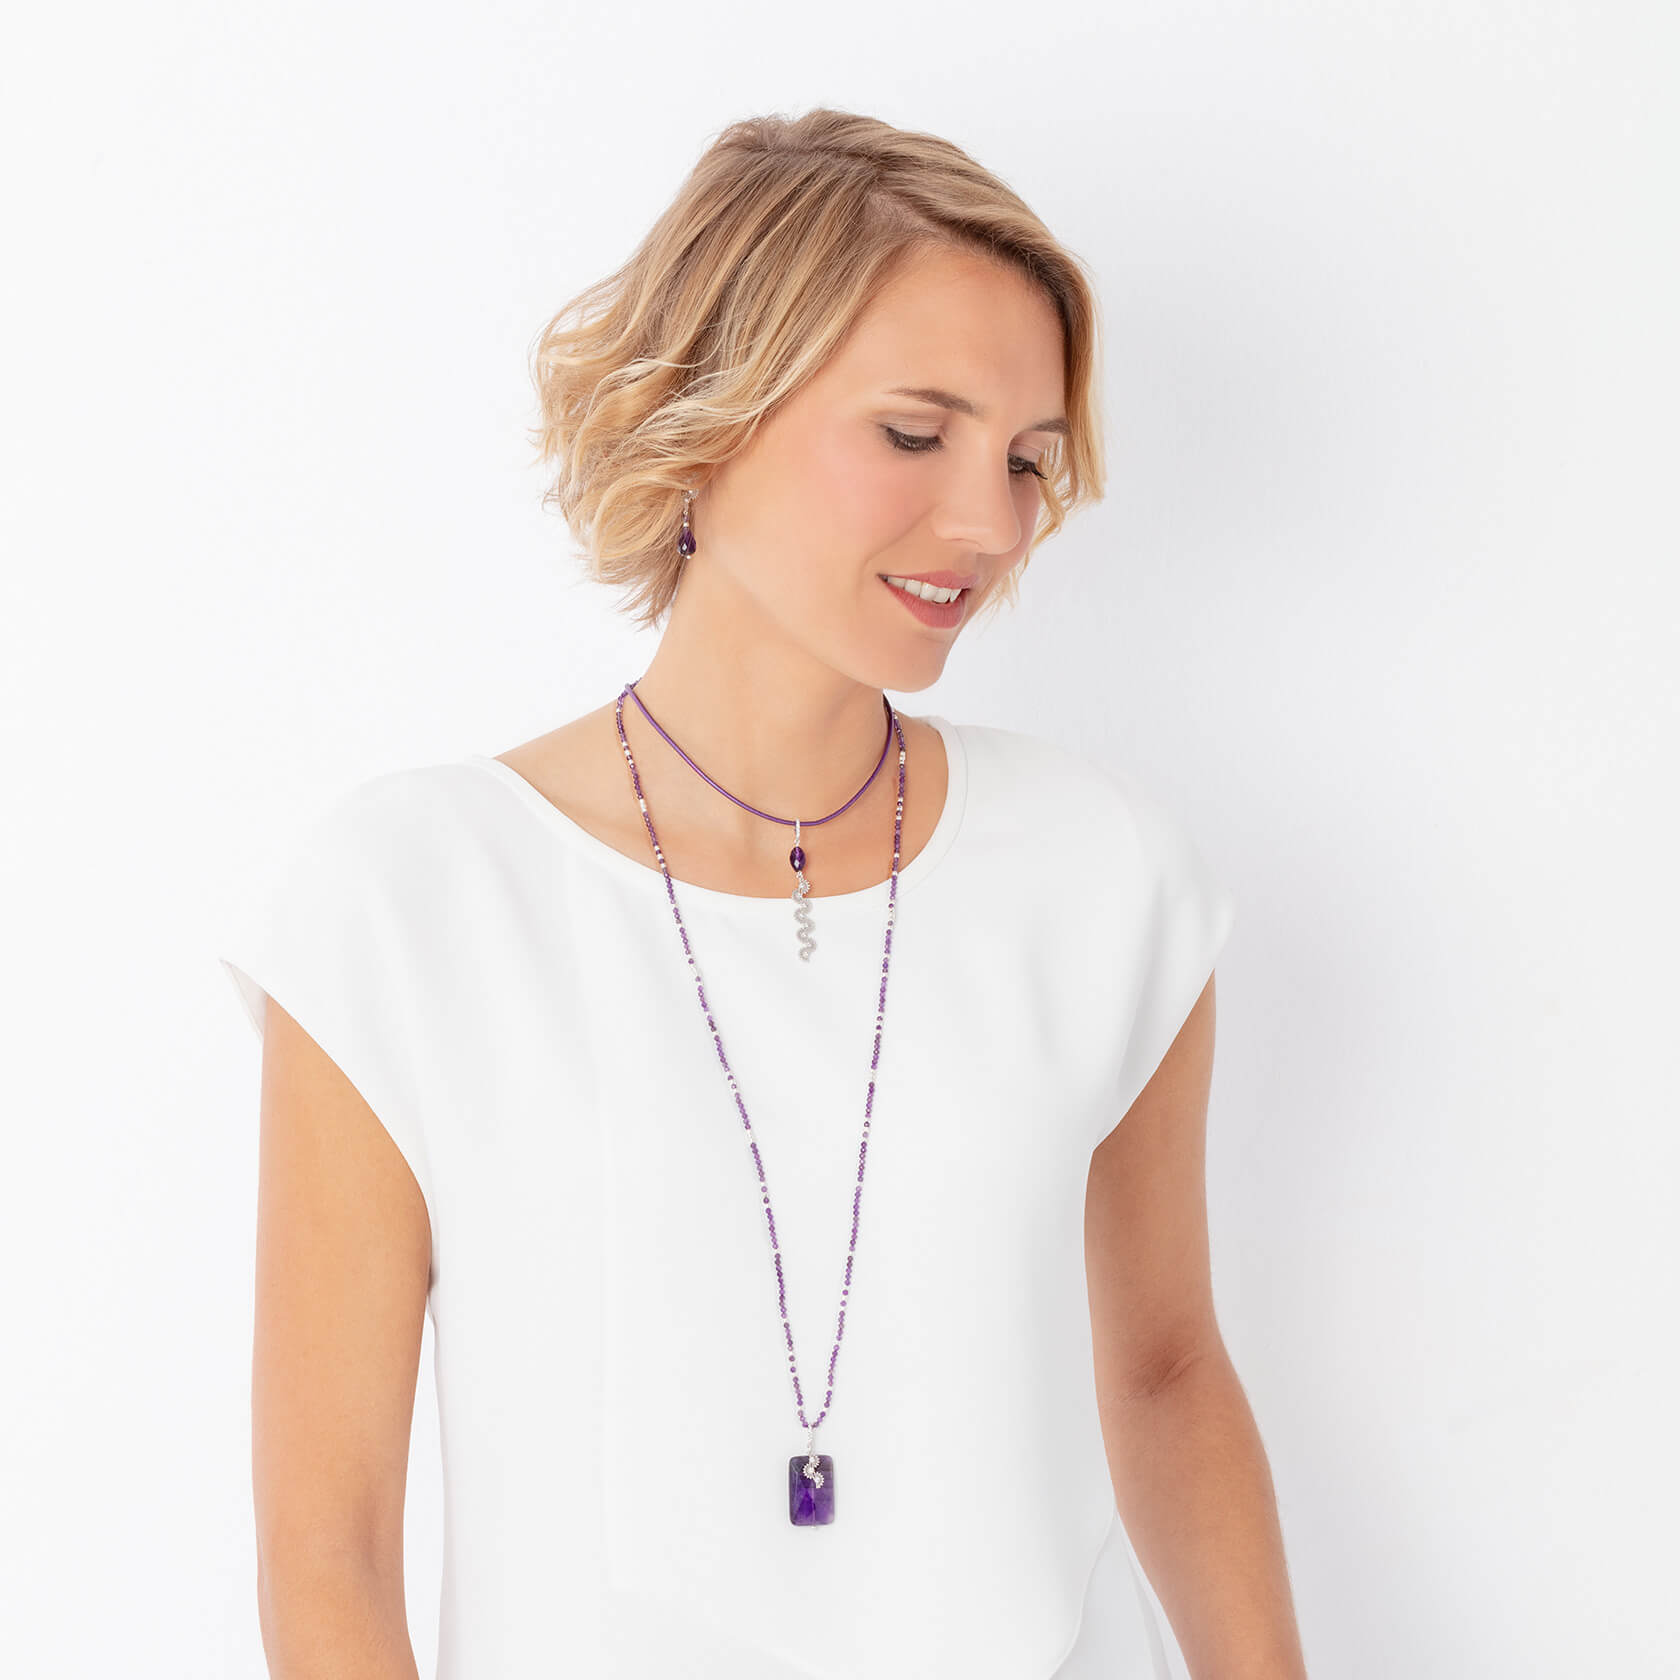 Long necklace of amethyst